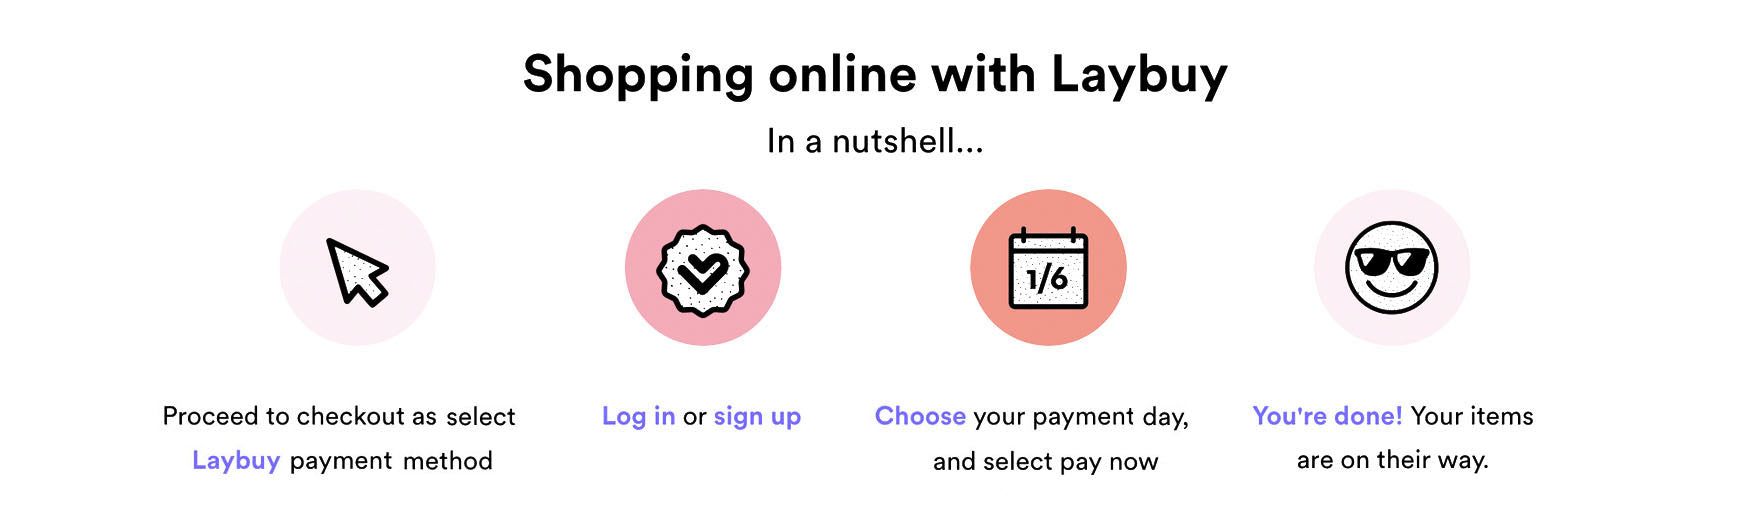 Shopping online with LayBuy at Roo's Beach